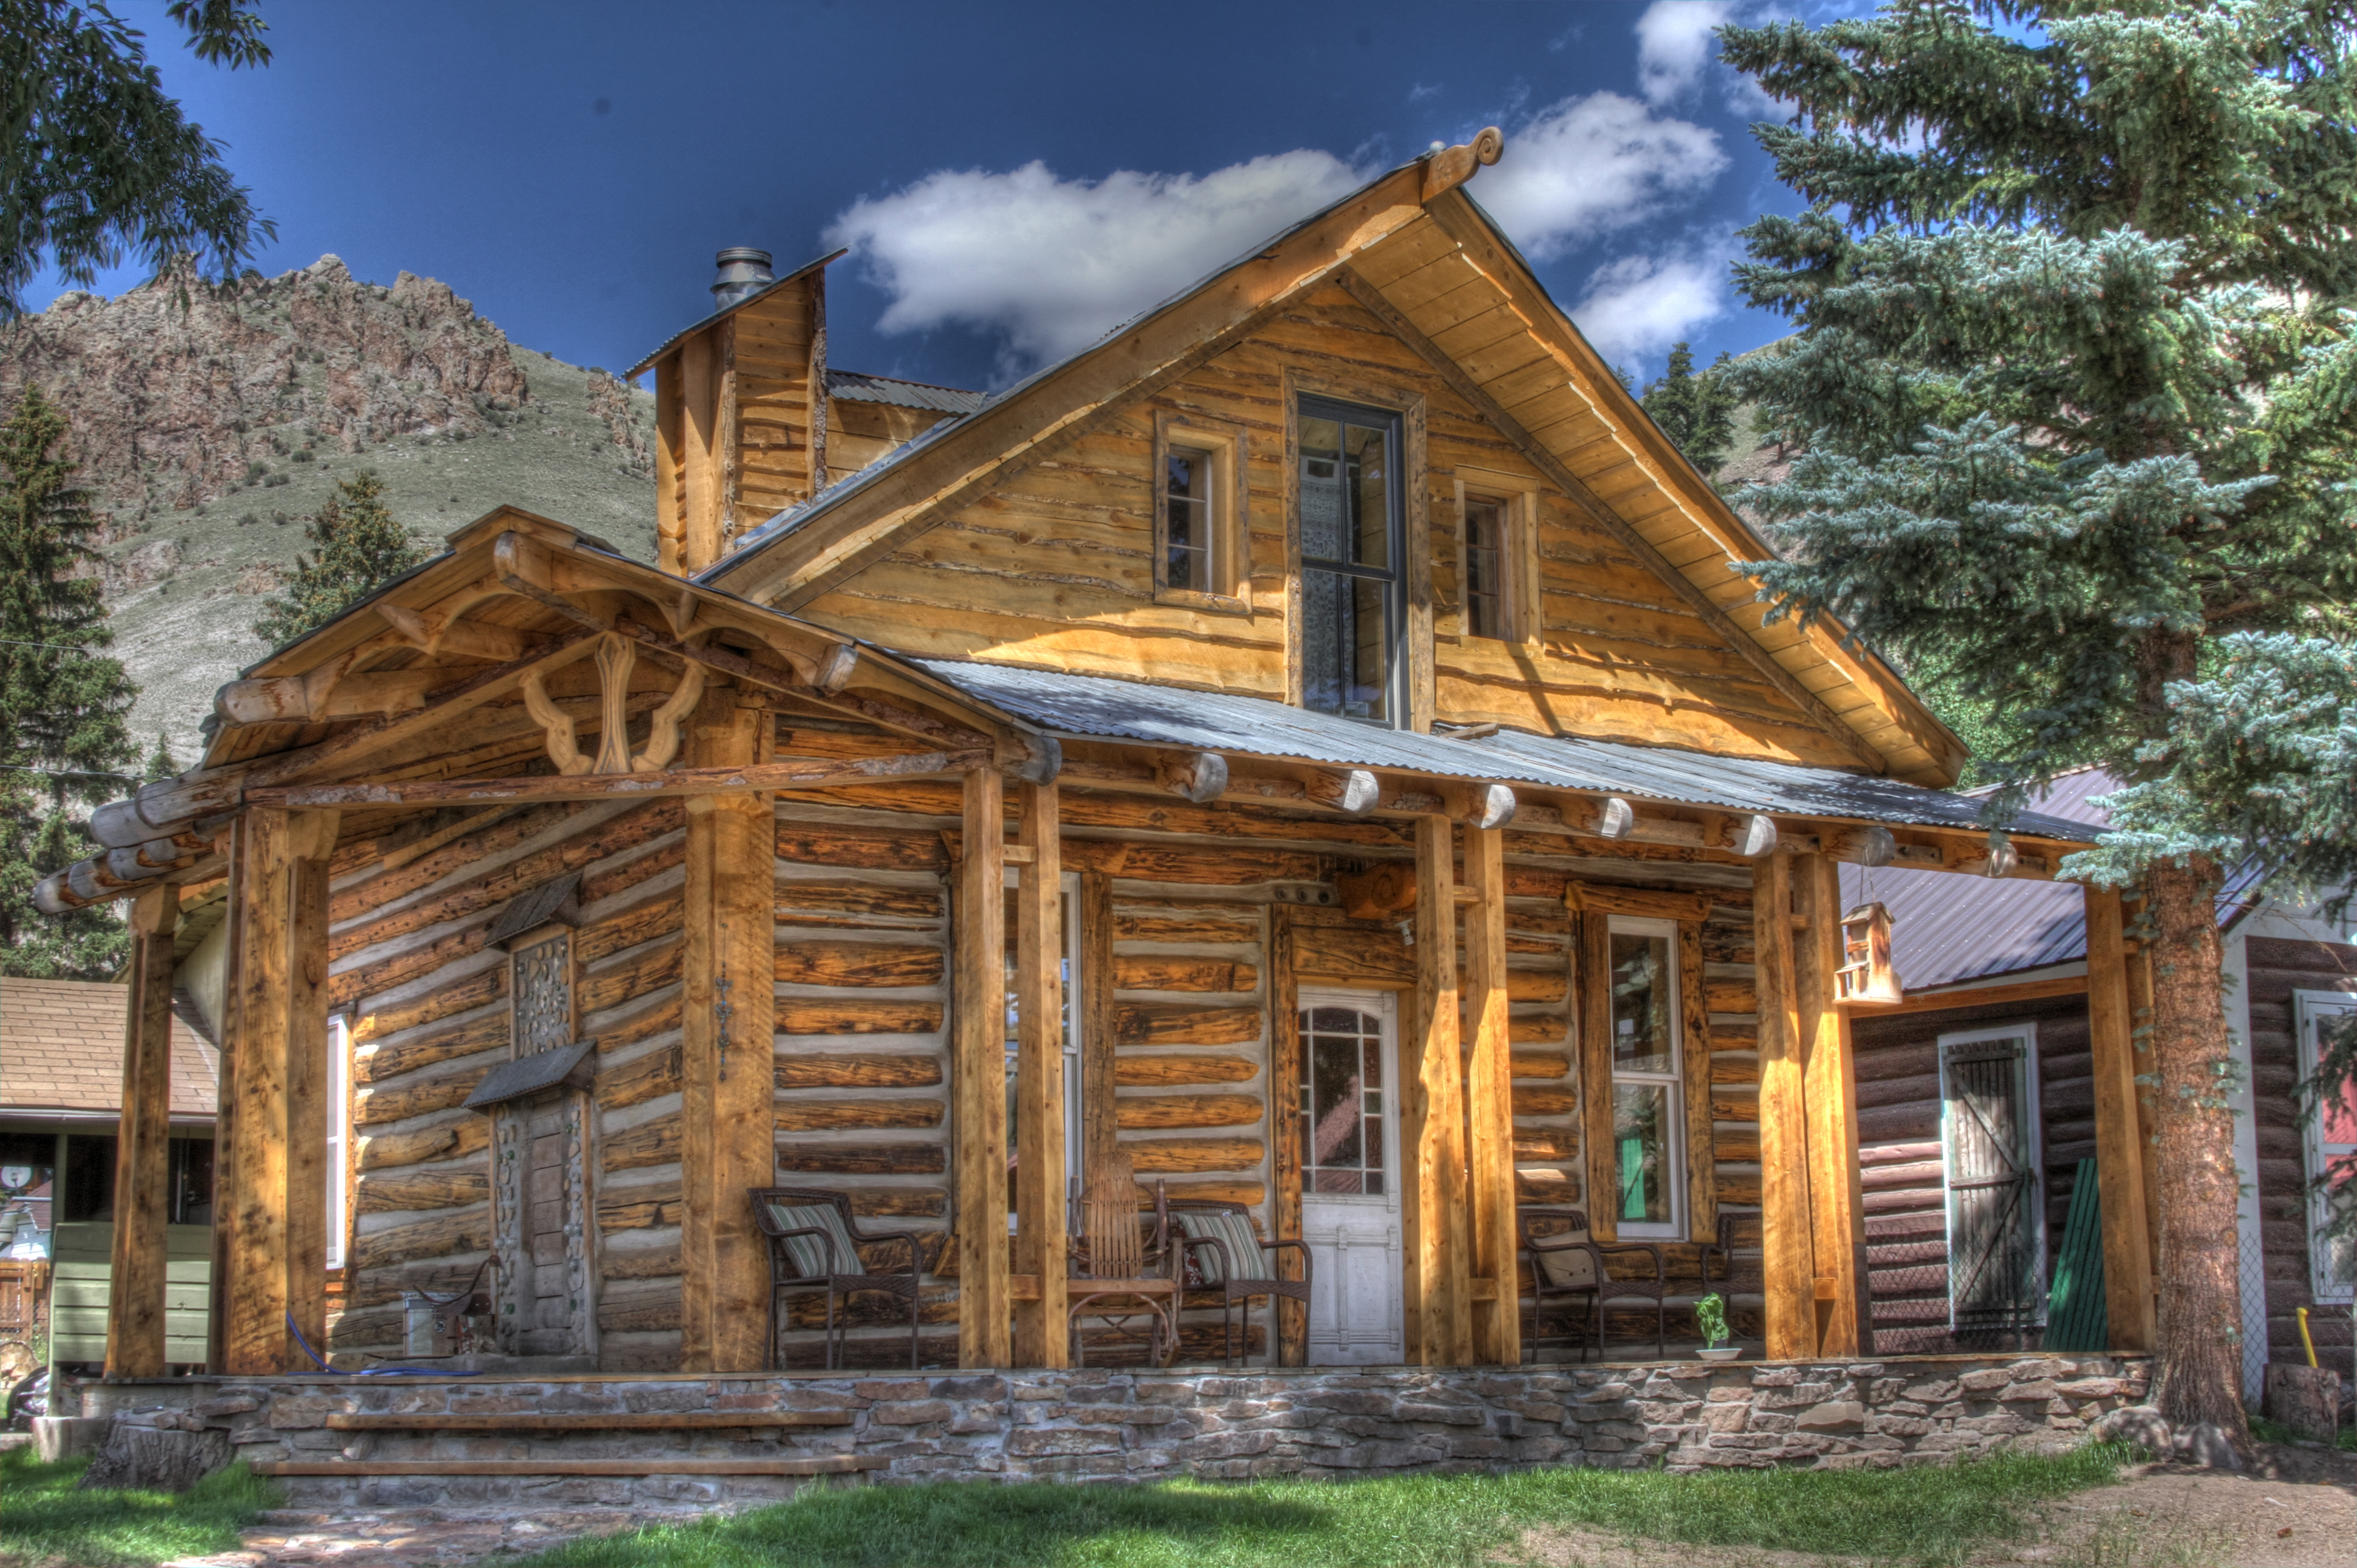 Marvelous photograph of Cozy little log cabin reddirtpics with #68472C color and 5172x3441 pixels